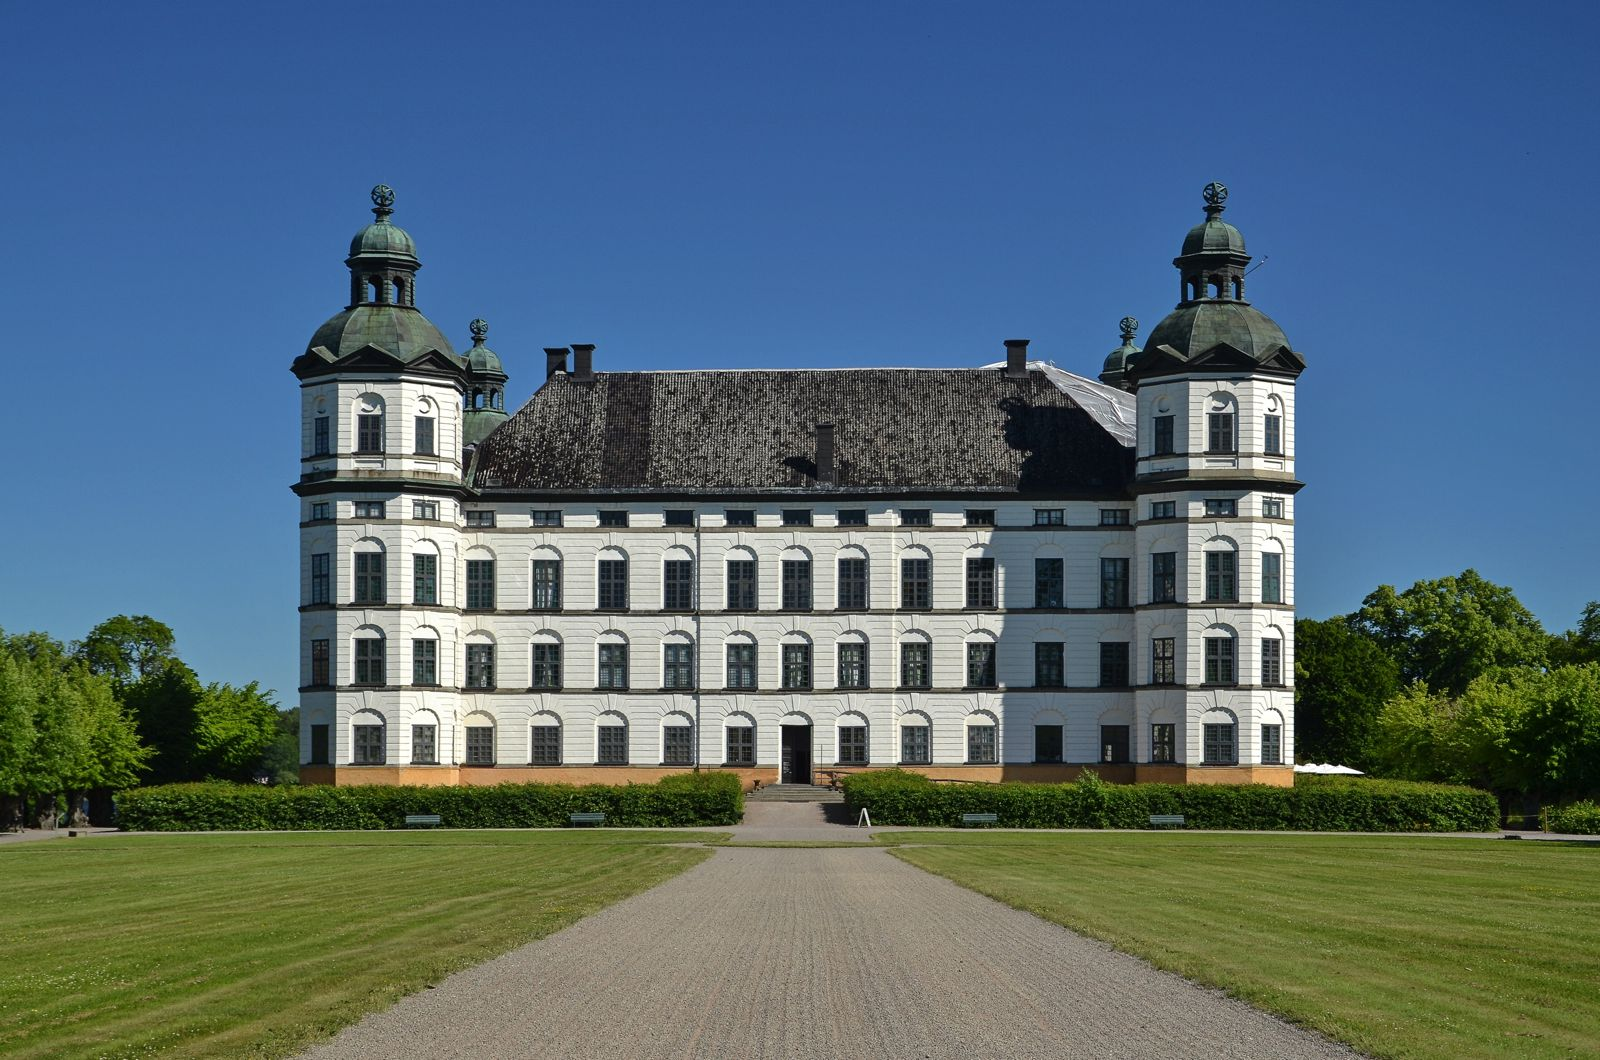 12 Magnificent Castles You Wouldn't Expect To See When Visiting Sweden (11)